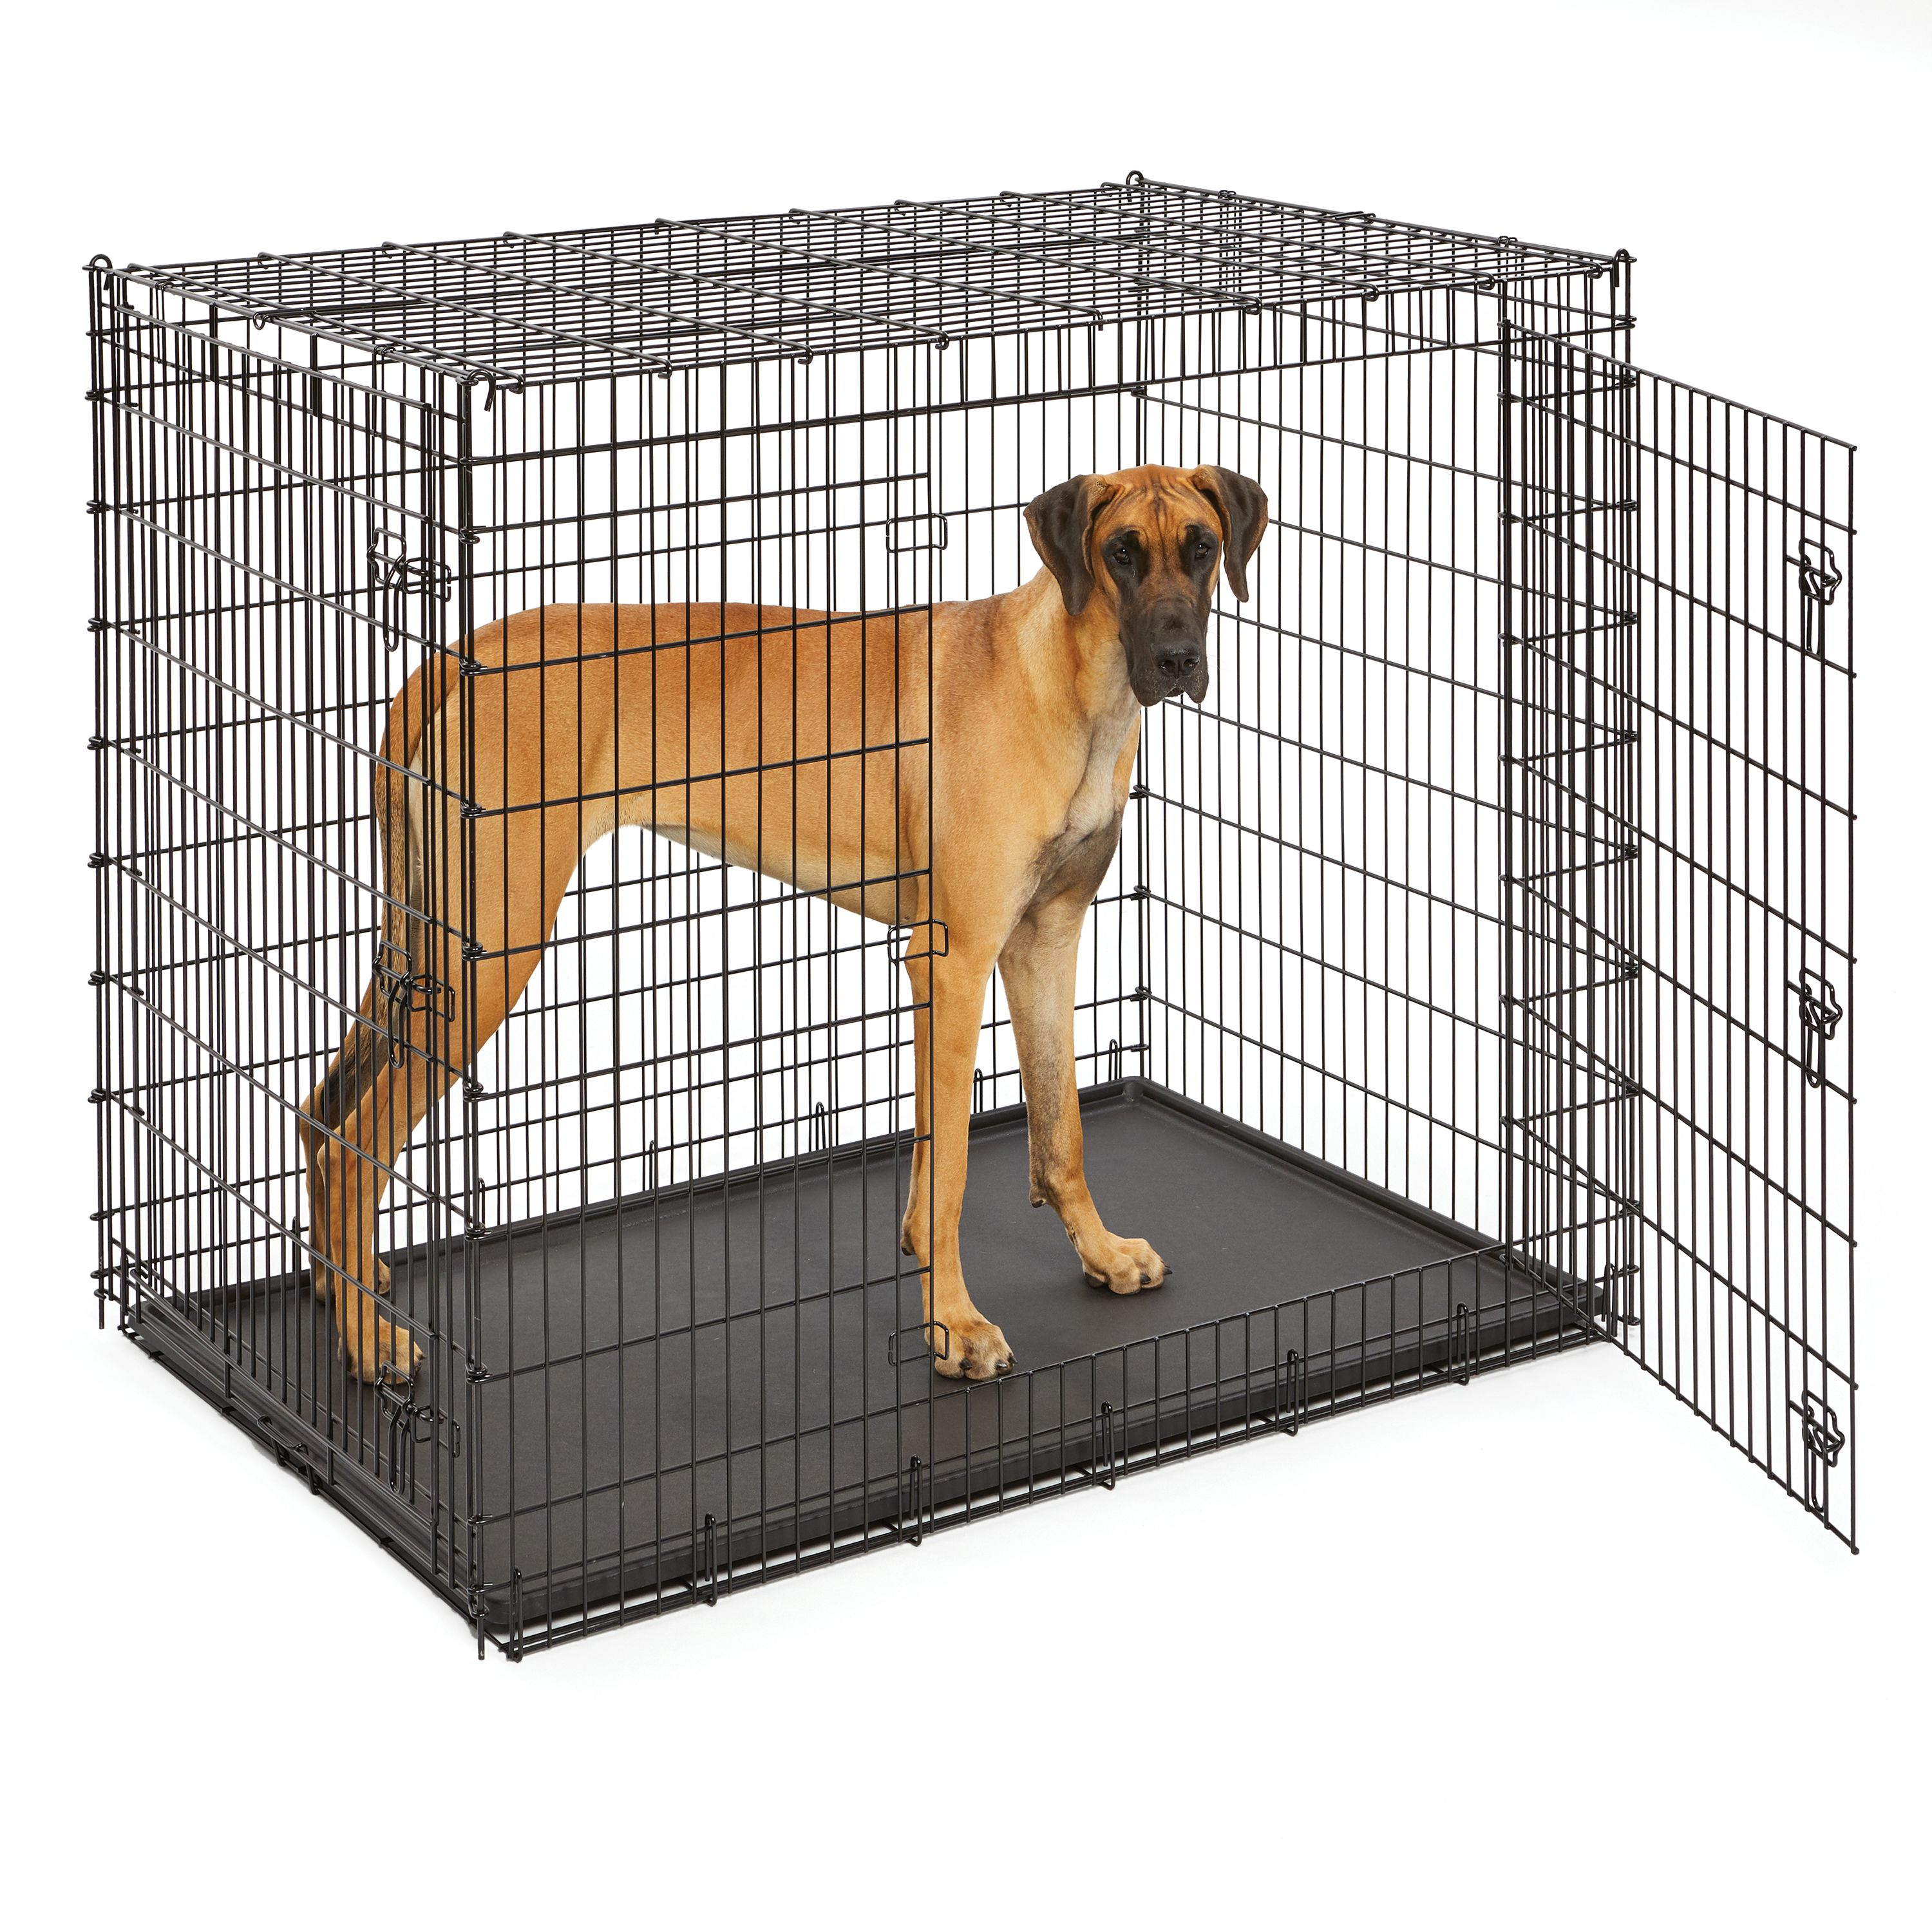 Giant Dog Crate 54-Inch for XXL Dog Breeds